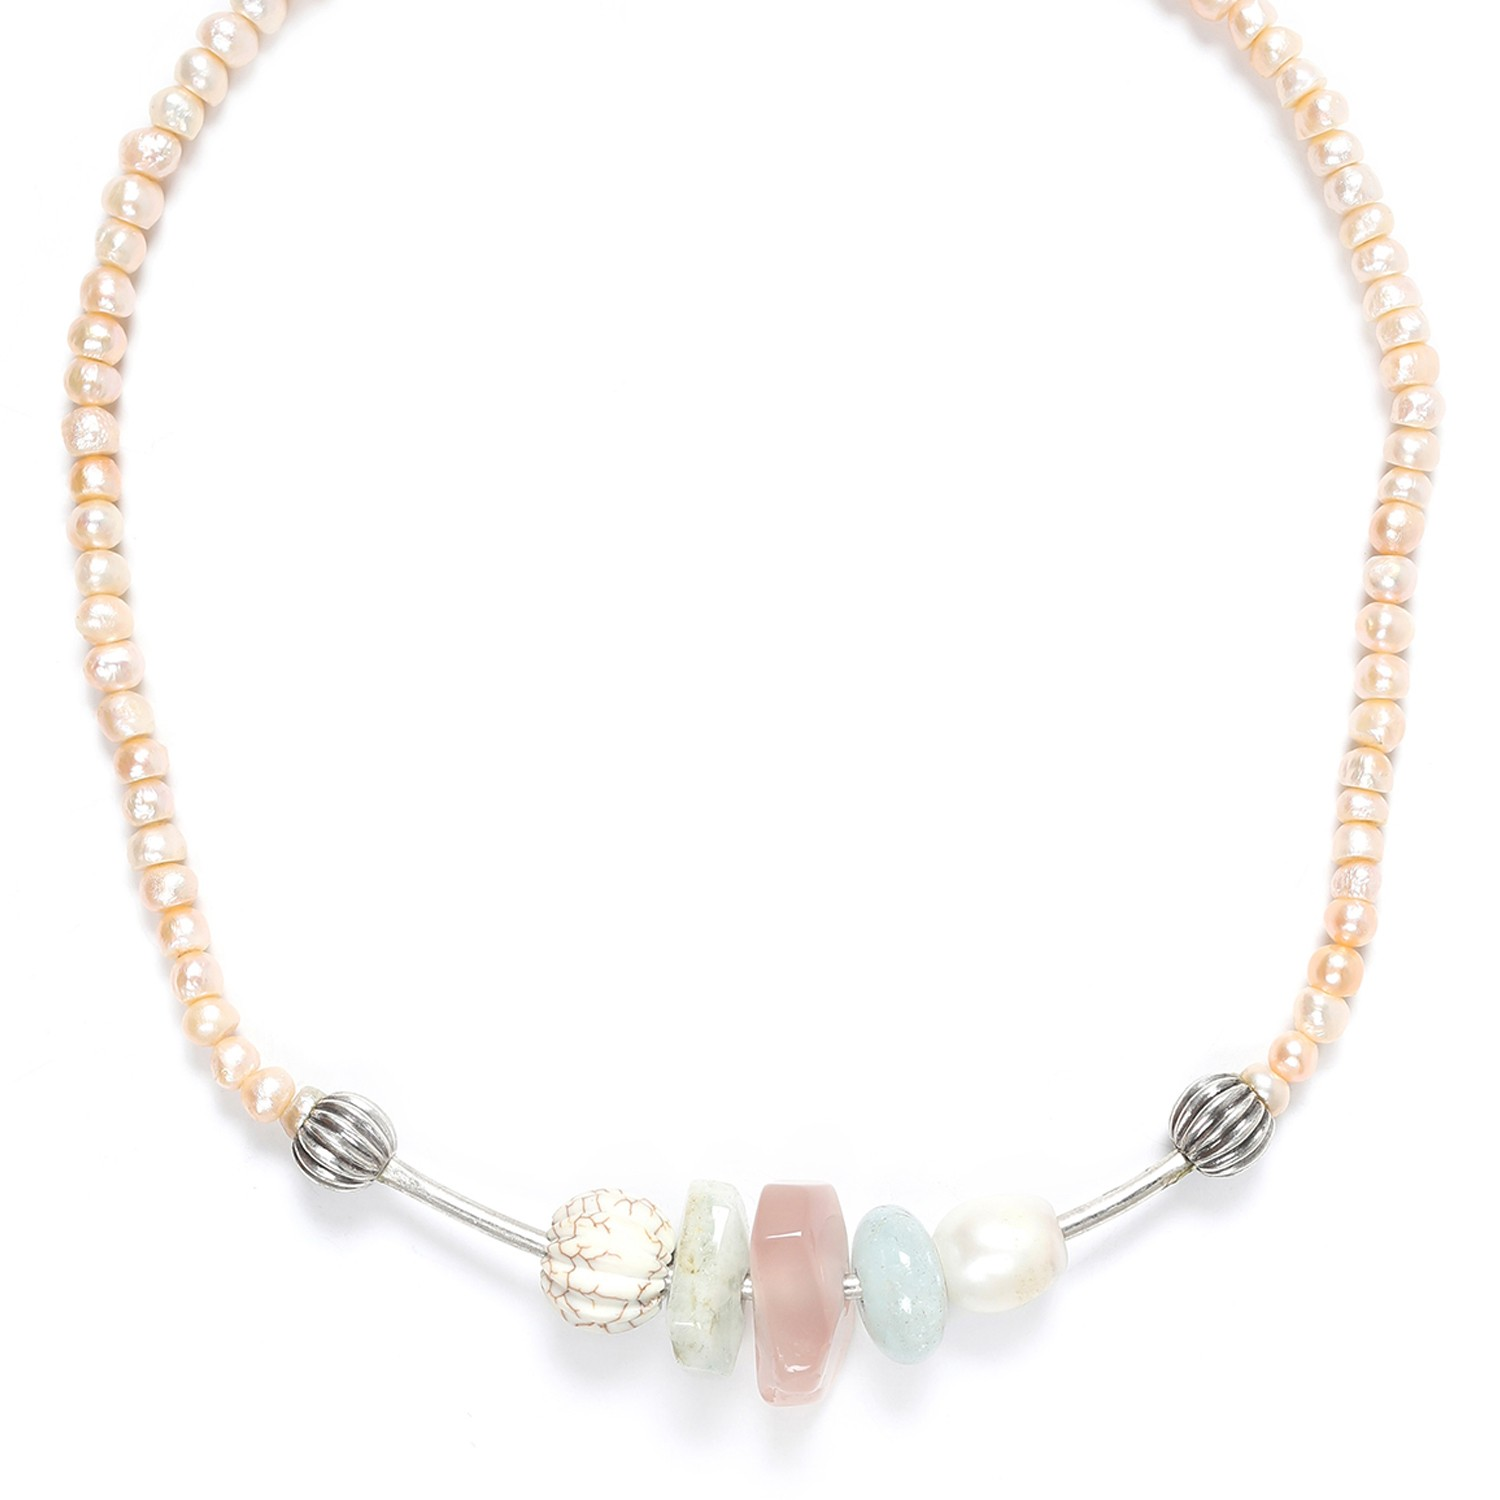 SECRET GARDEN pearl necklace